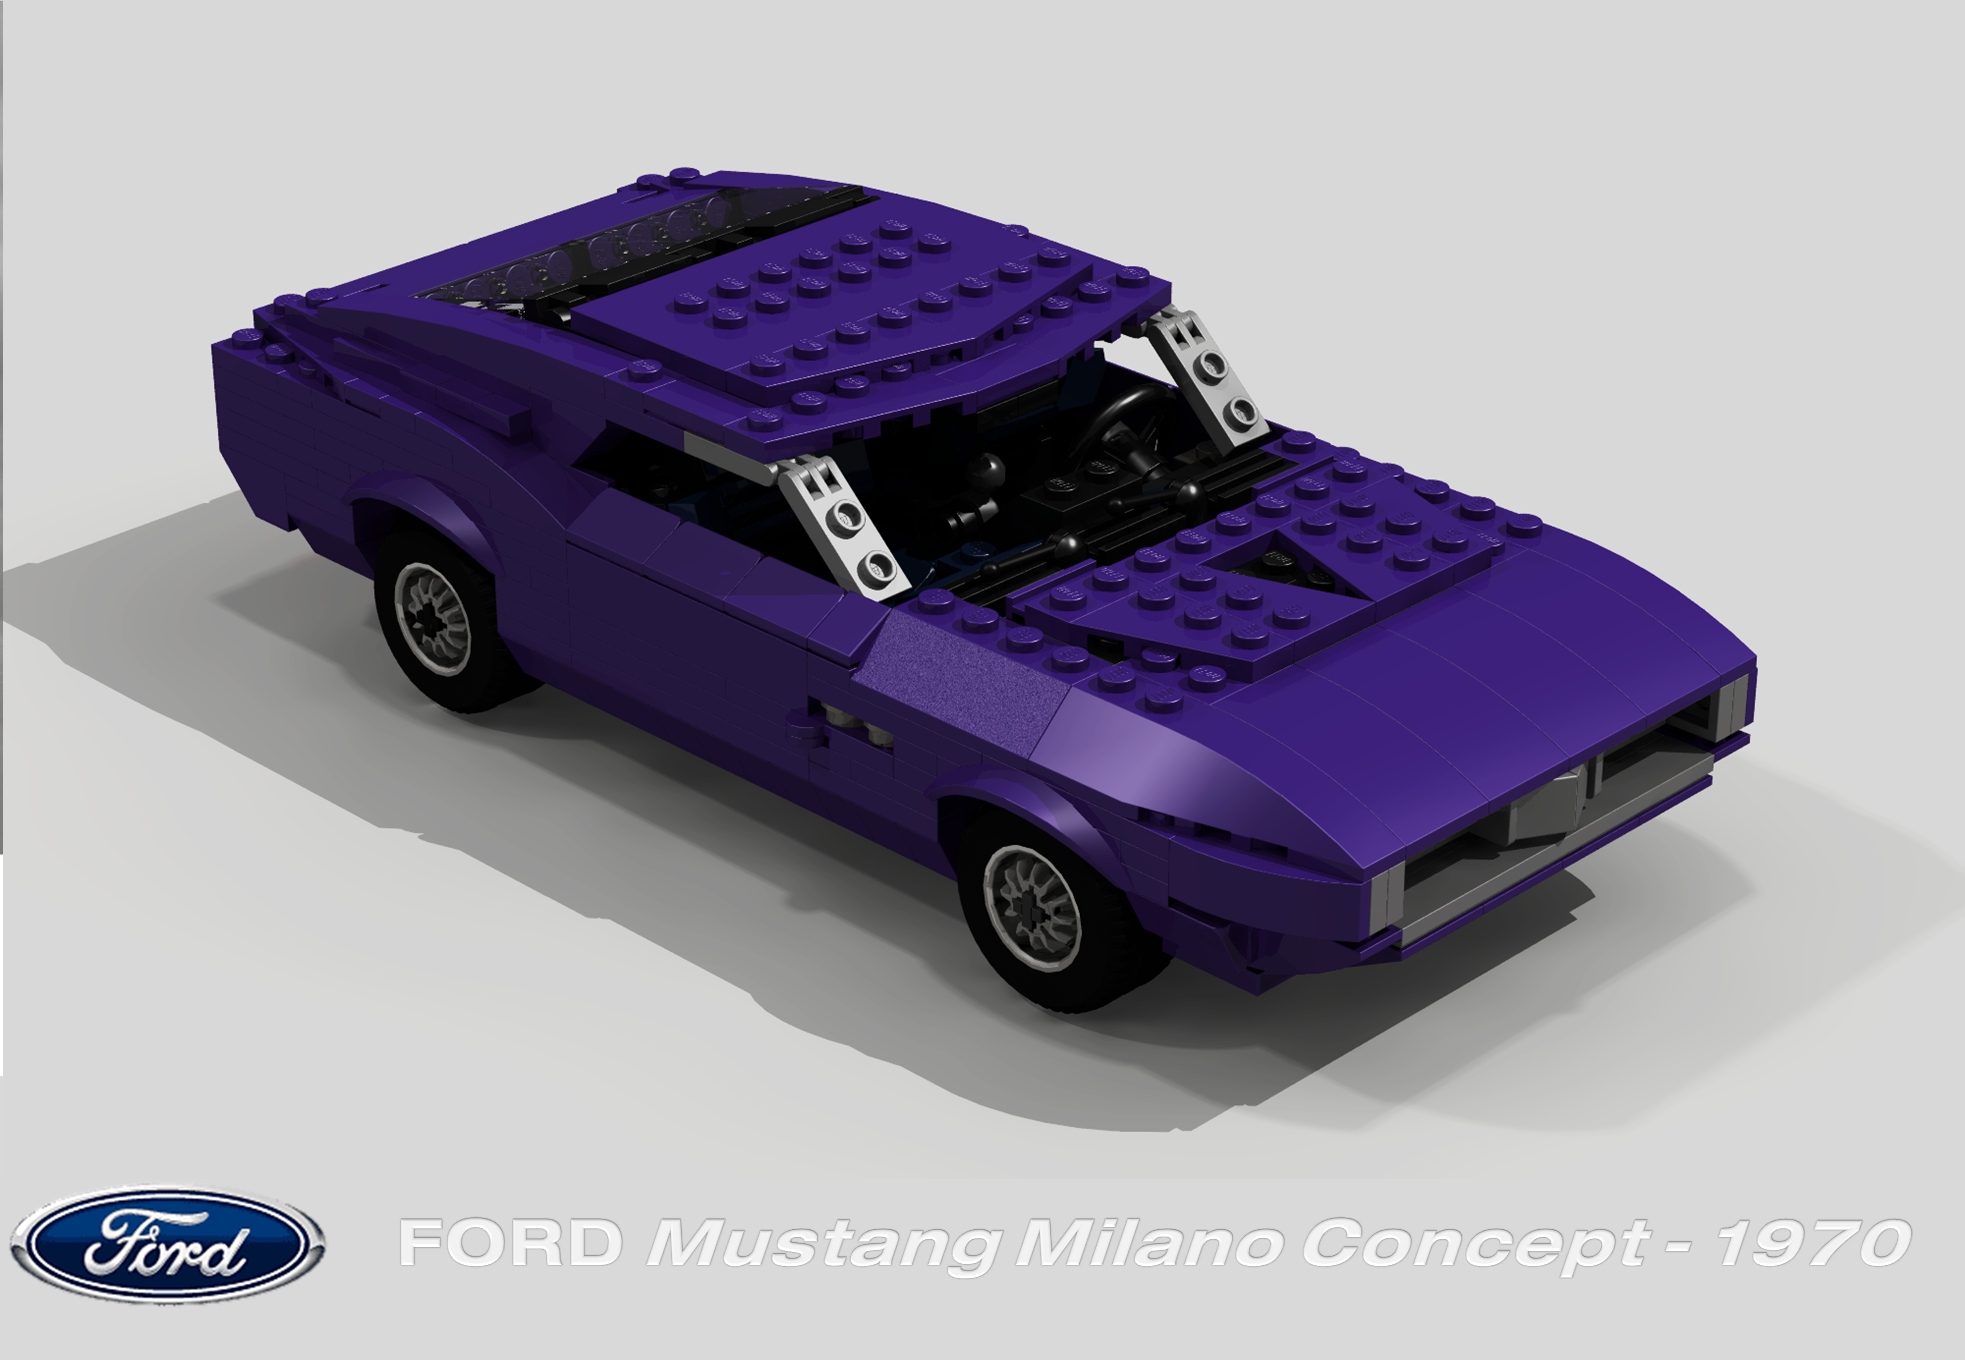 ford_mustang_milano_concept_1970_09.png